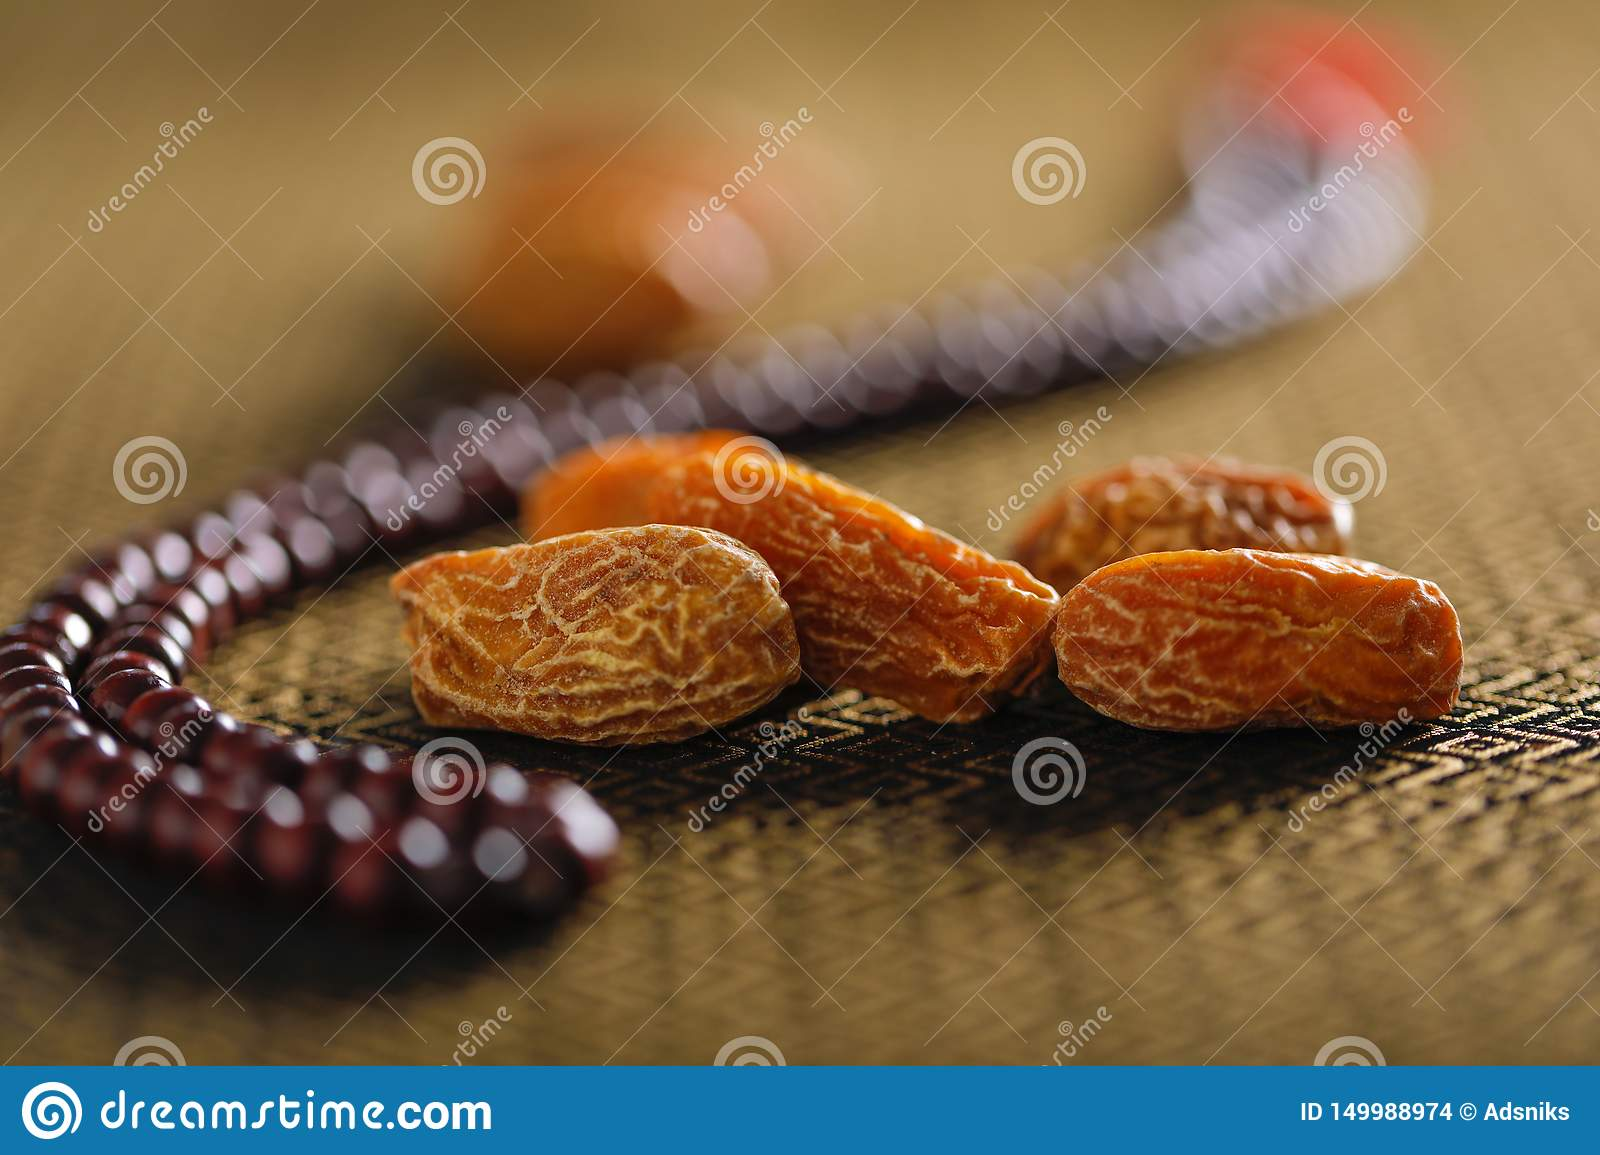 Date Fruits With An Islamic Prayer Beads On An Artistic